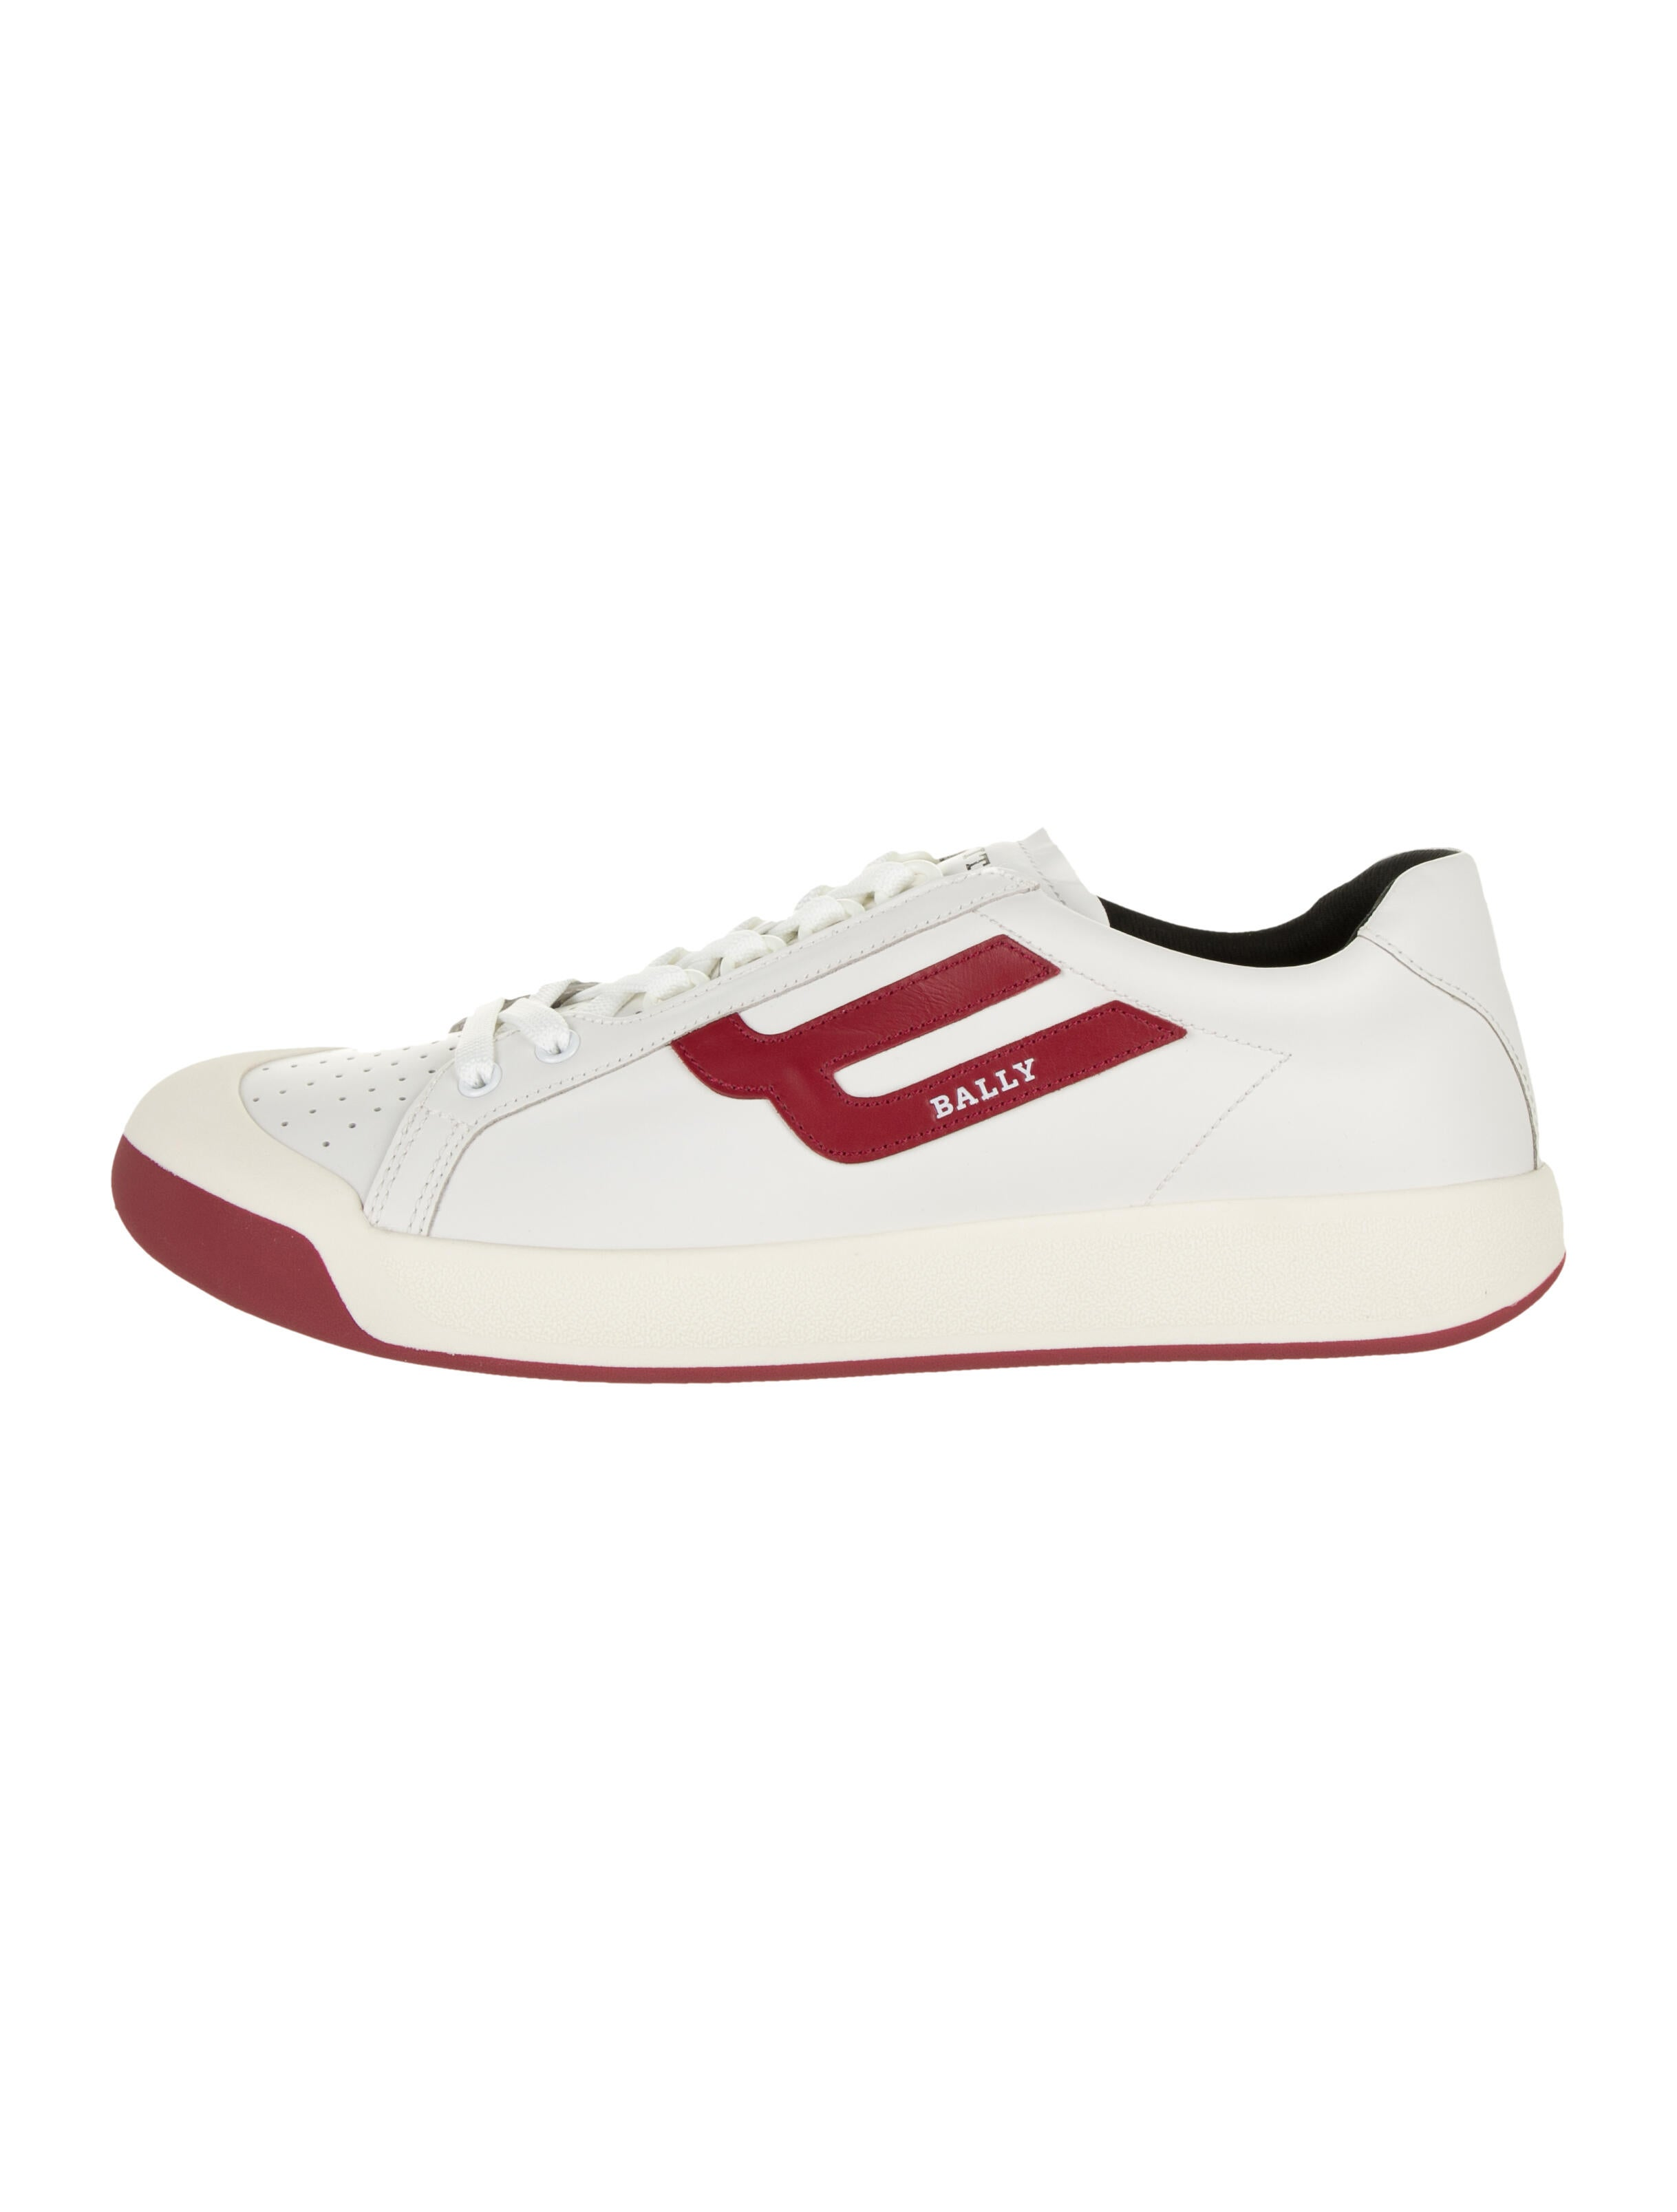 Bally New Competition Sneakers - Shoes